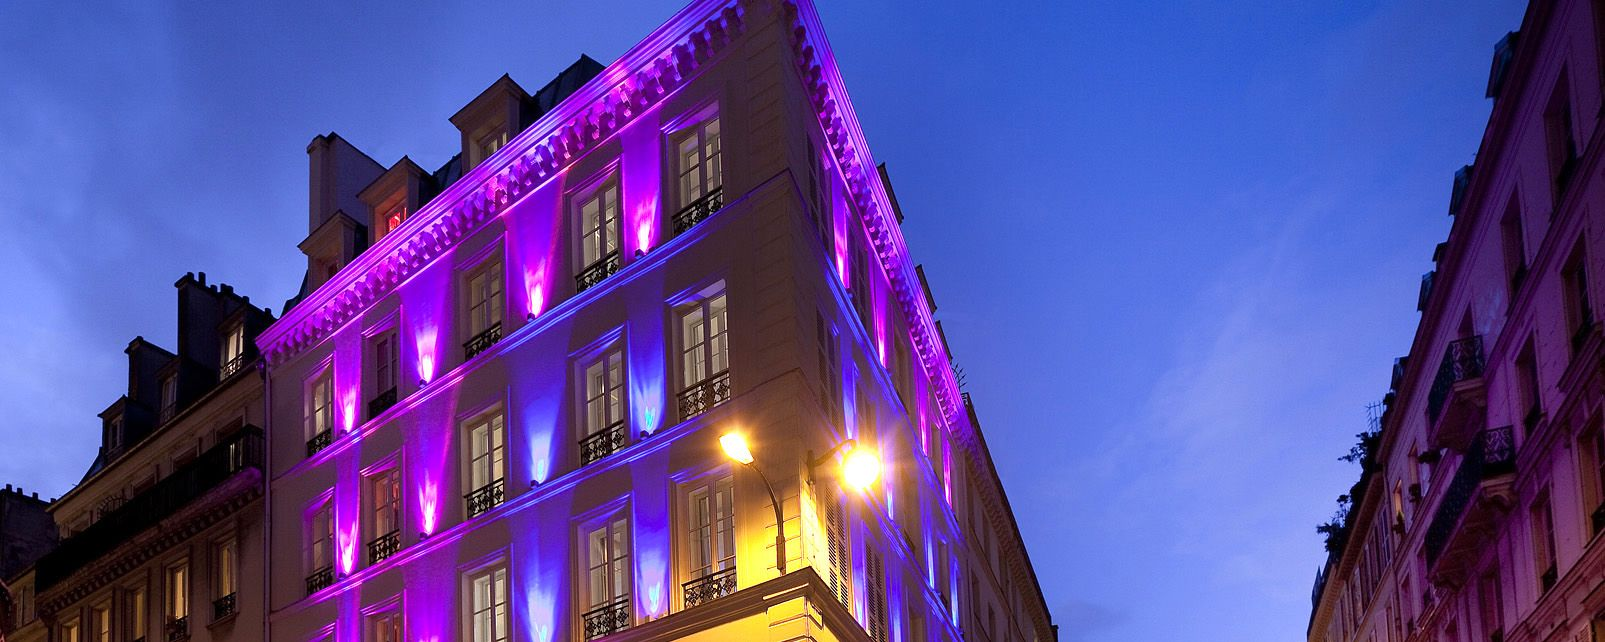 Hotel secret de paris design h tel in for Hotel secret paris